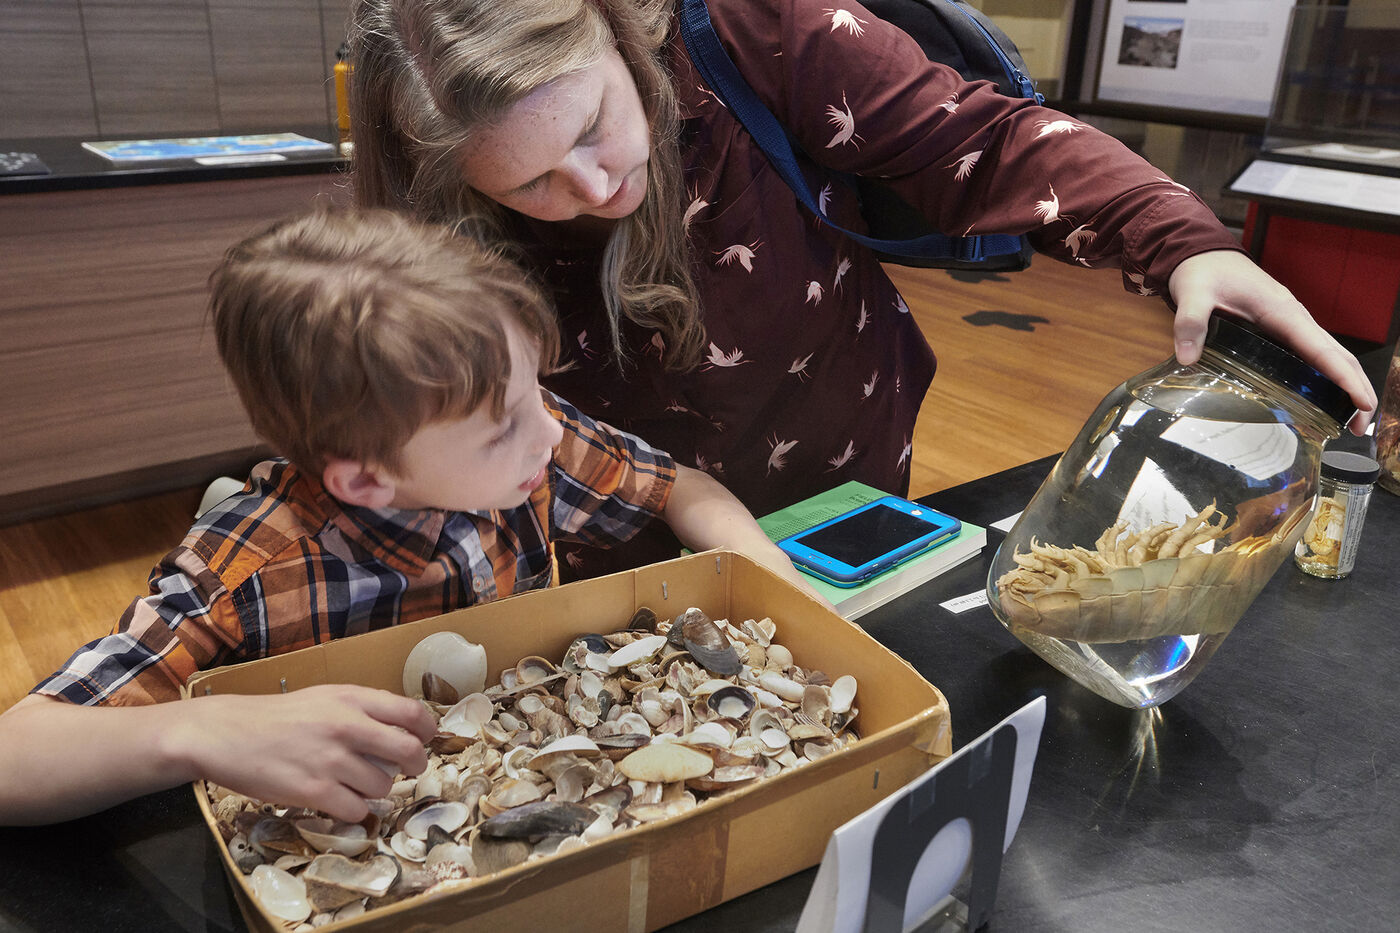 A child and their guardian look examine specimens arranged on a table. The guardian holds a glass jar at an angle for the child to see. The child is picking throw a box of sea shells.